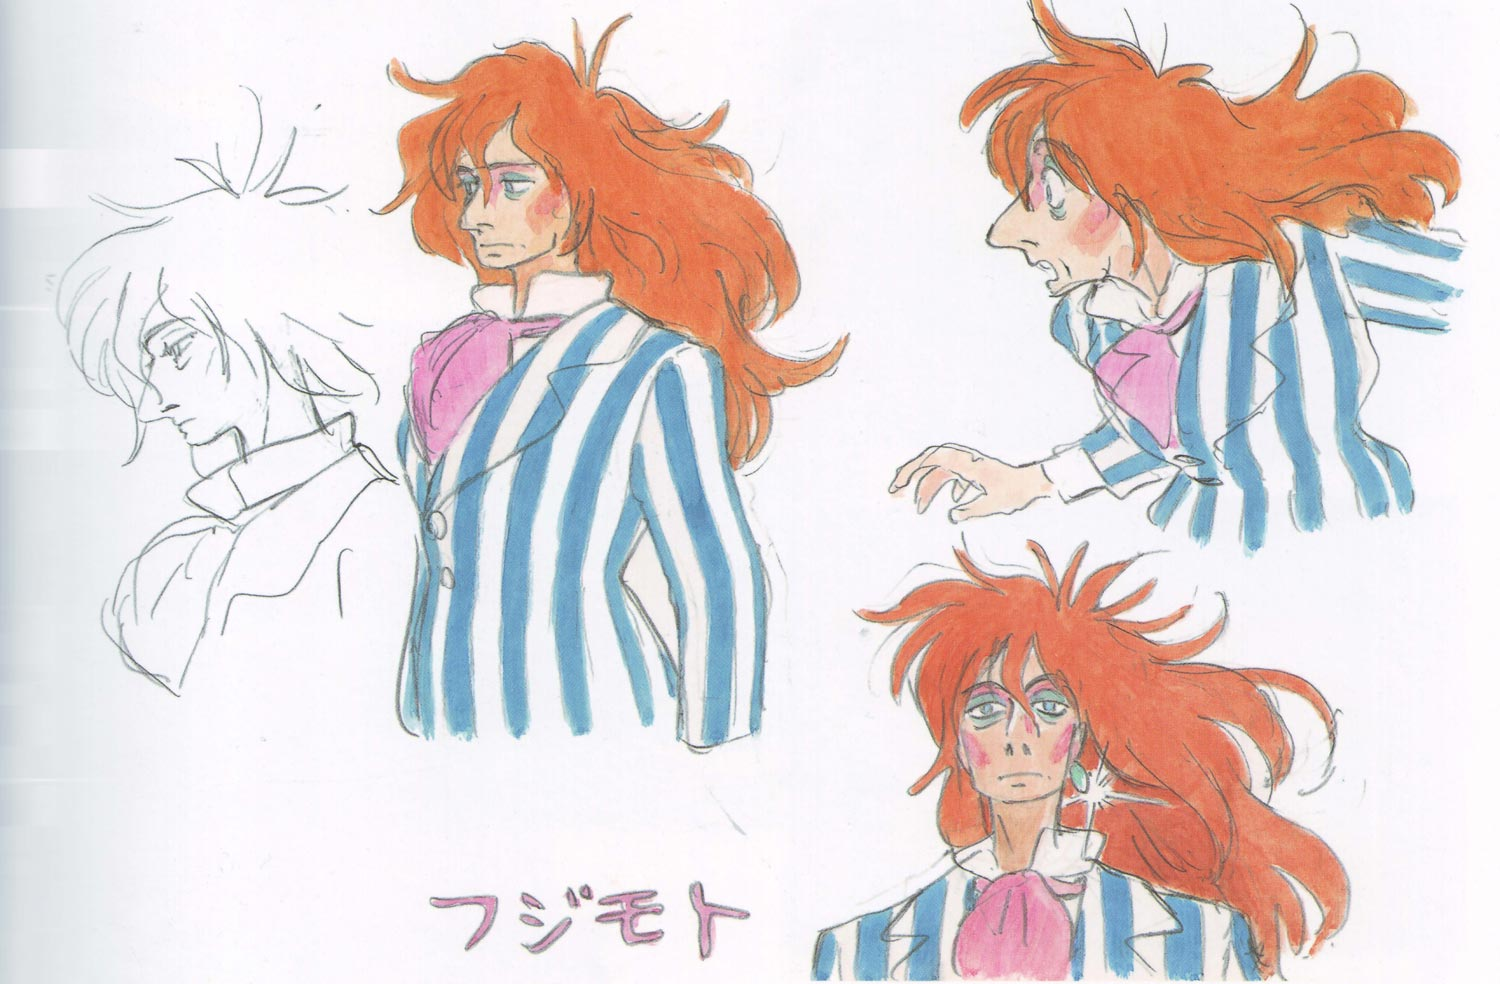 The Art Of Character Design Pdf : Living lines library 崖の上のポニョ ponyo character